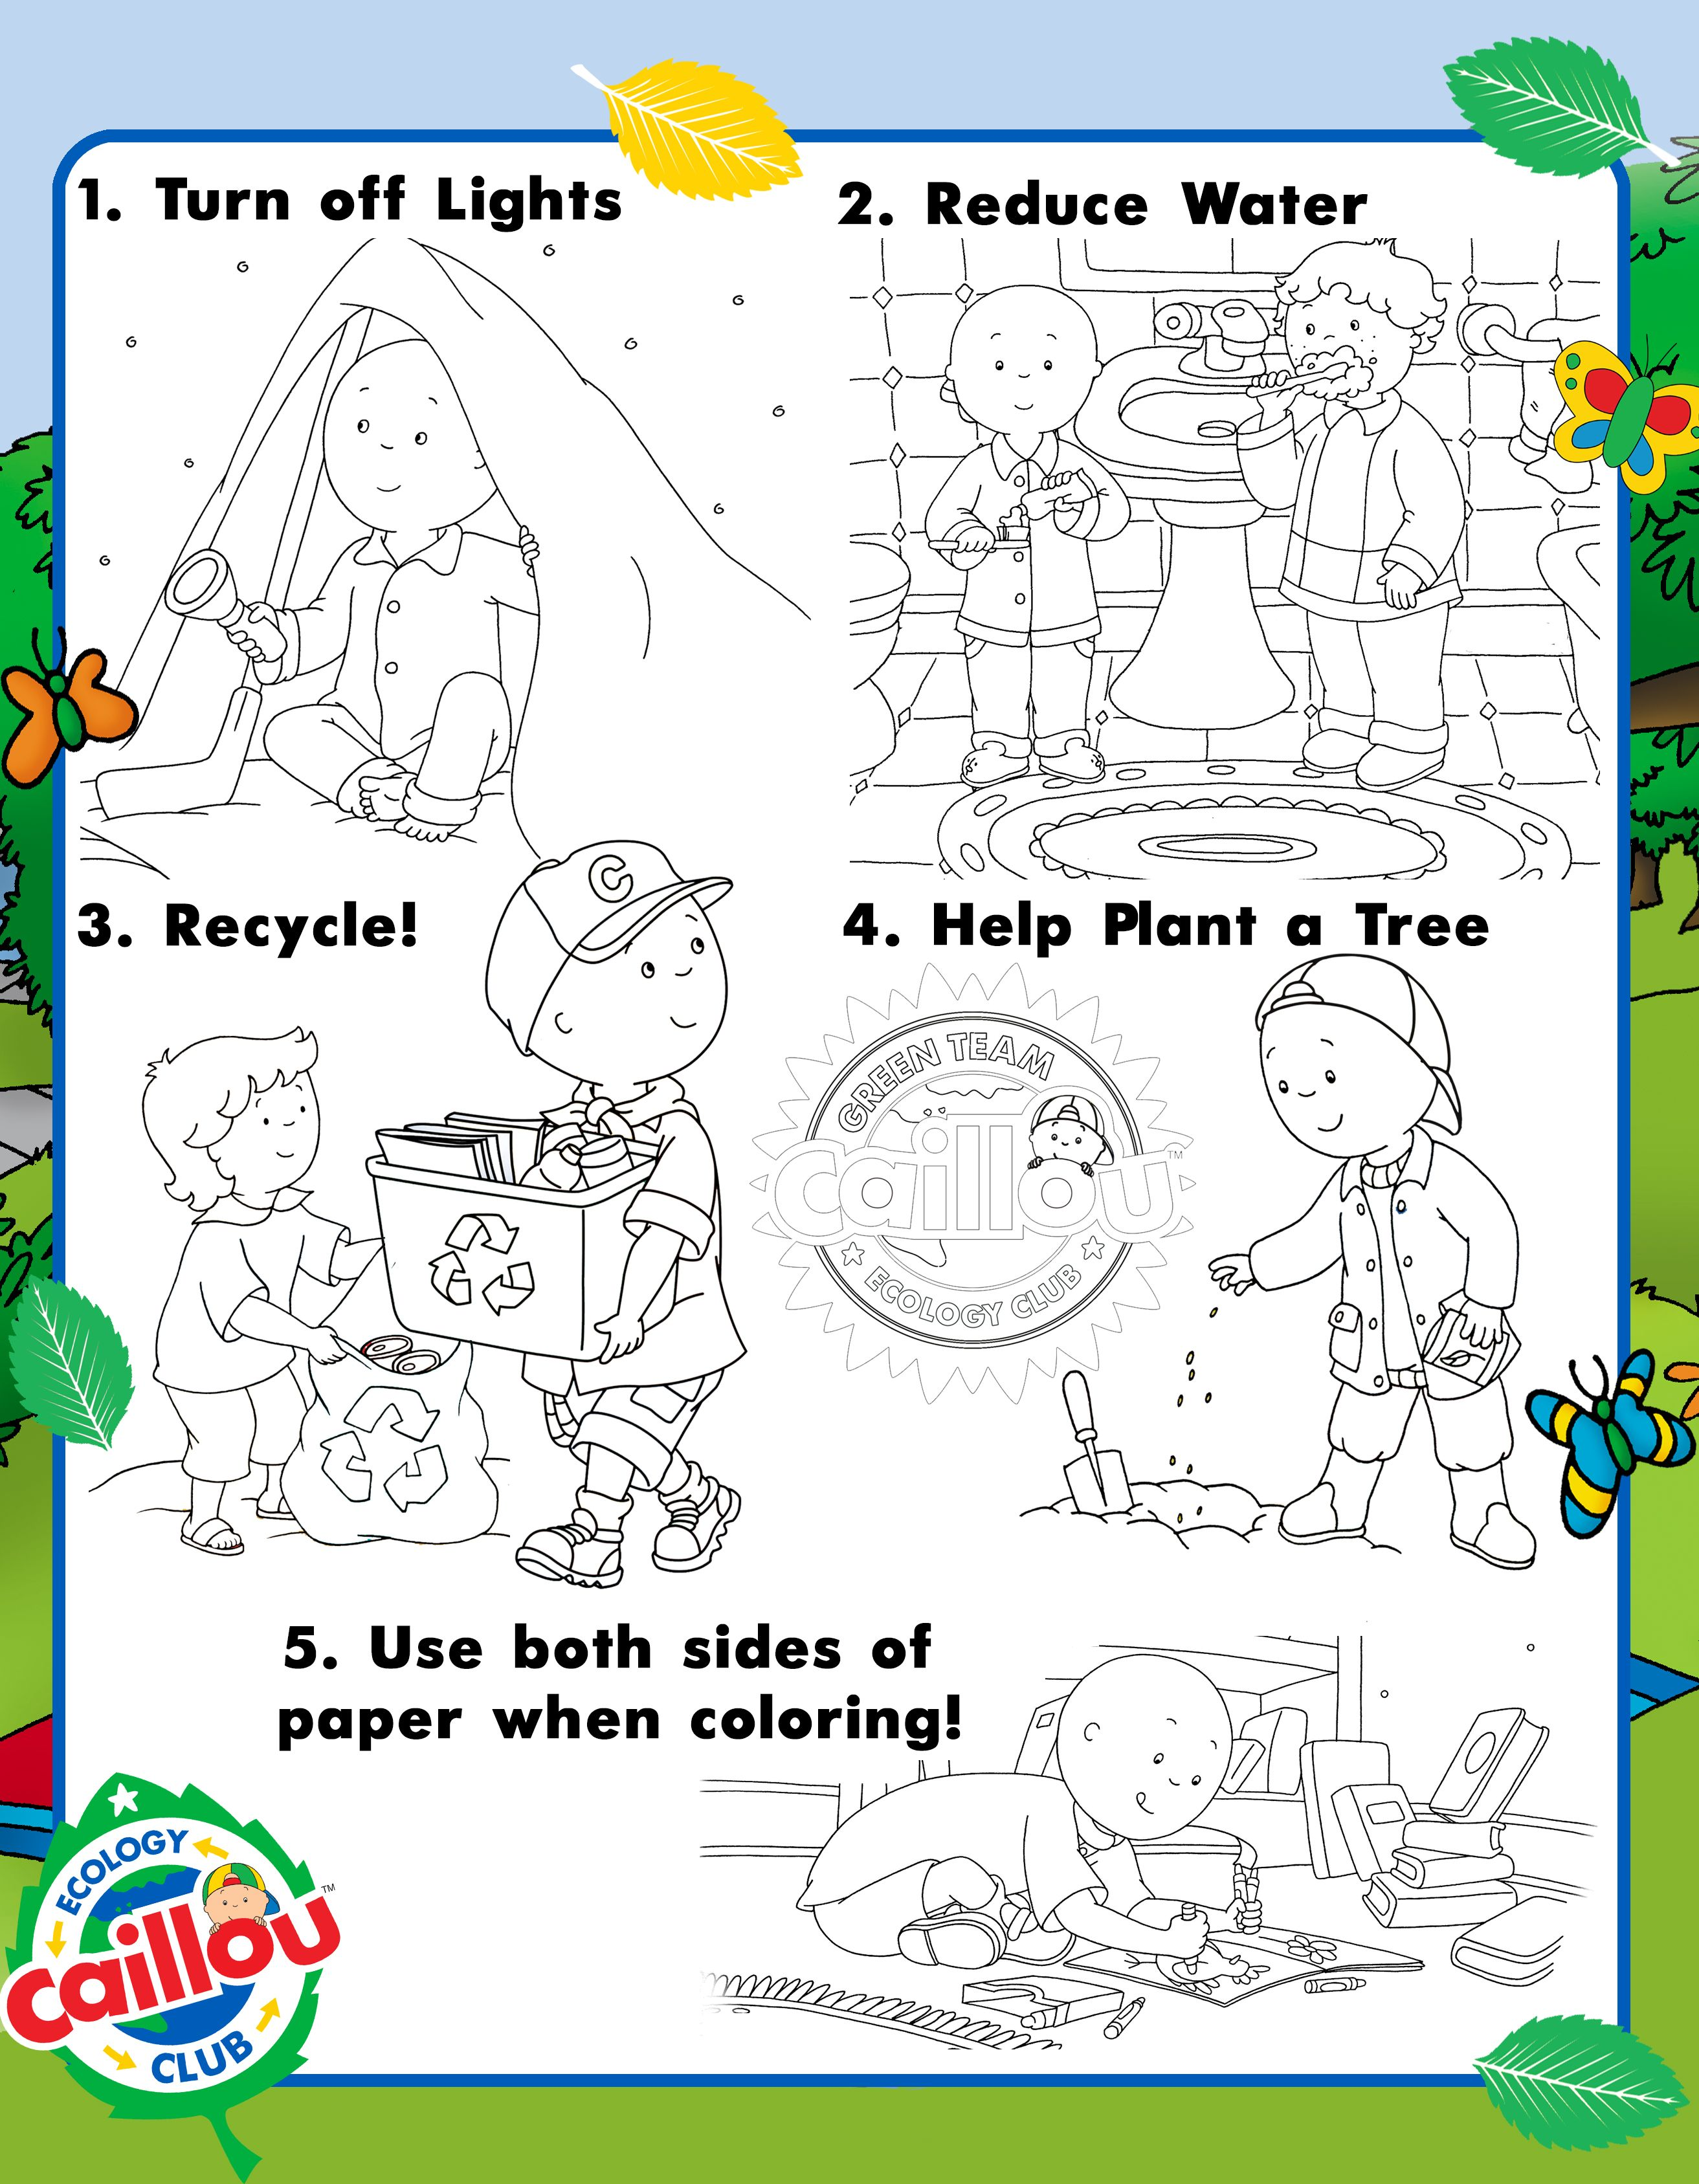 Check out this Fun Coloring Sheet Checklist outlining ways Toddlers ...